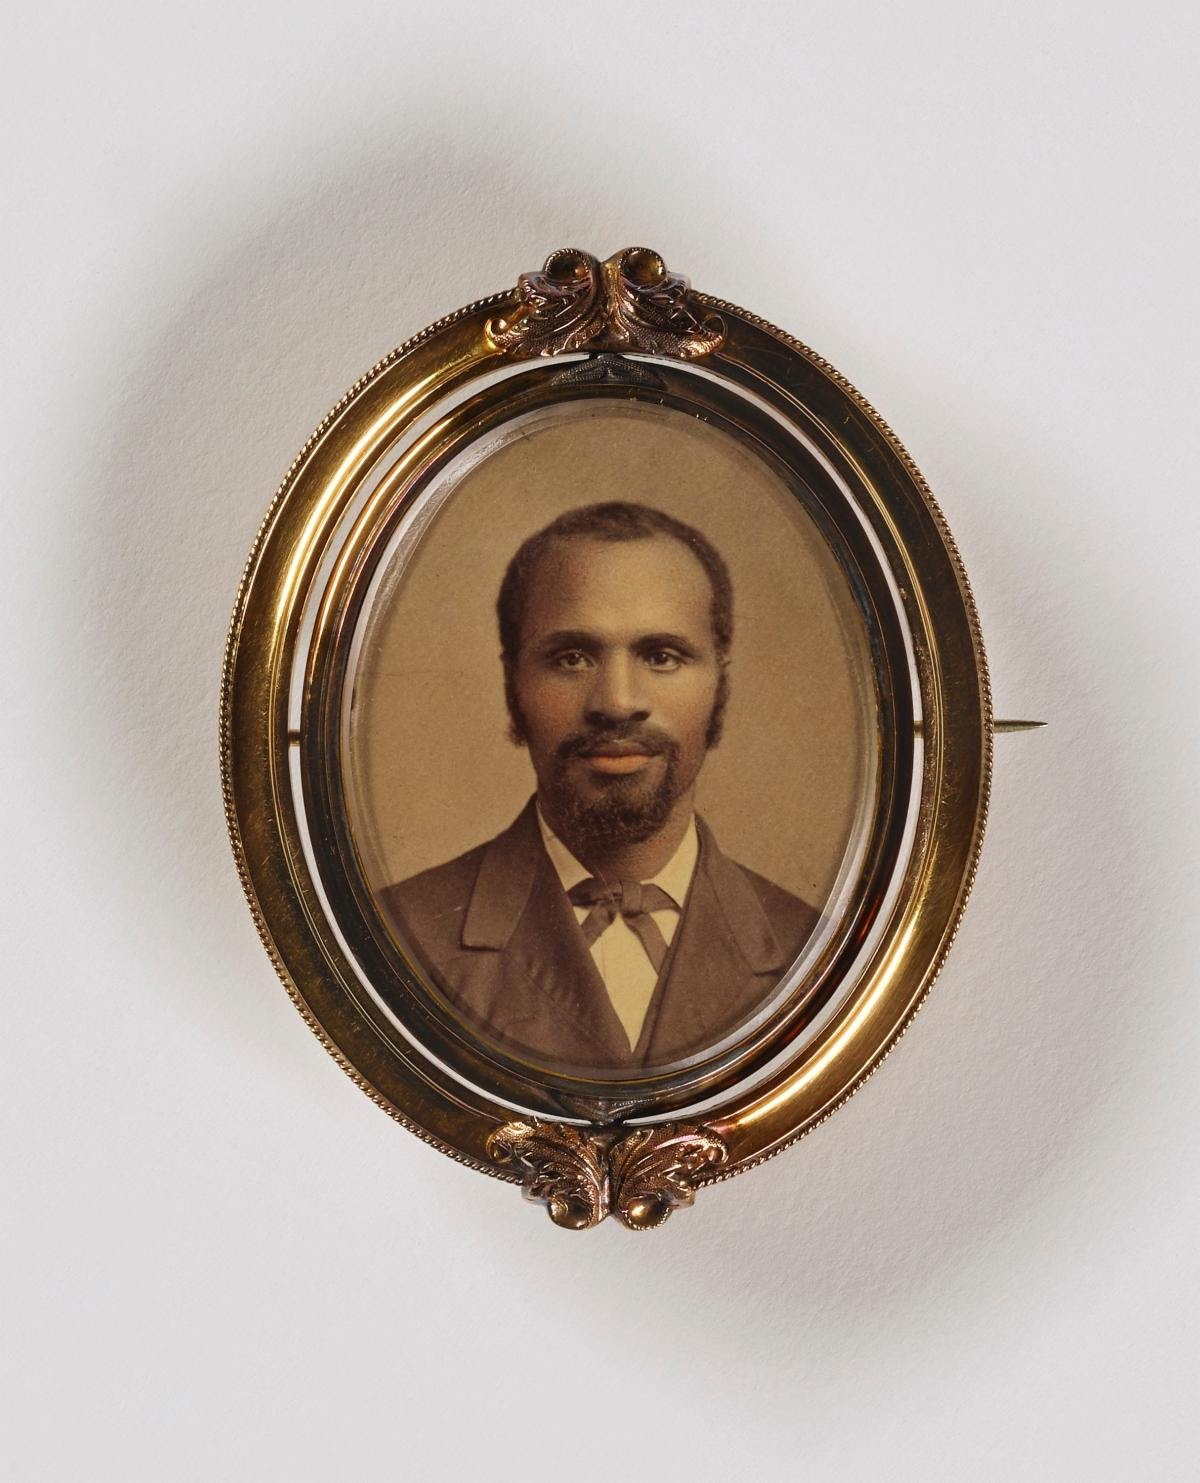 Unidentified artist, Untitled (brooch, man with goatee), undated, albumen print in metal setting.Smithsonian American Art Museum, the L. J. West Collection of Photographic Jewelry, Museum purchase made possible through the Franz H. and Luisita L. Denghausen Endowment